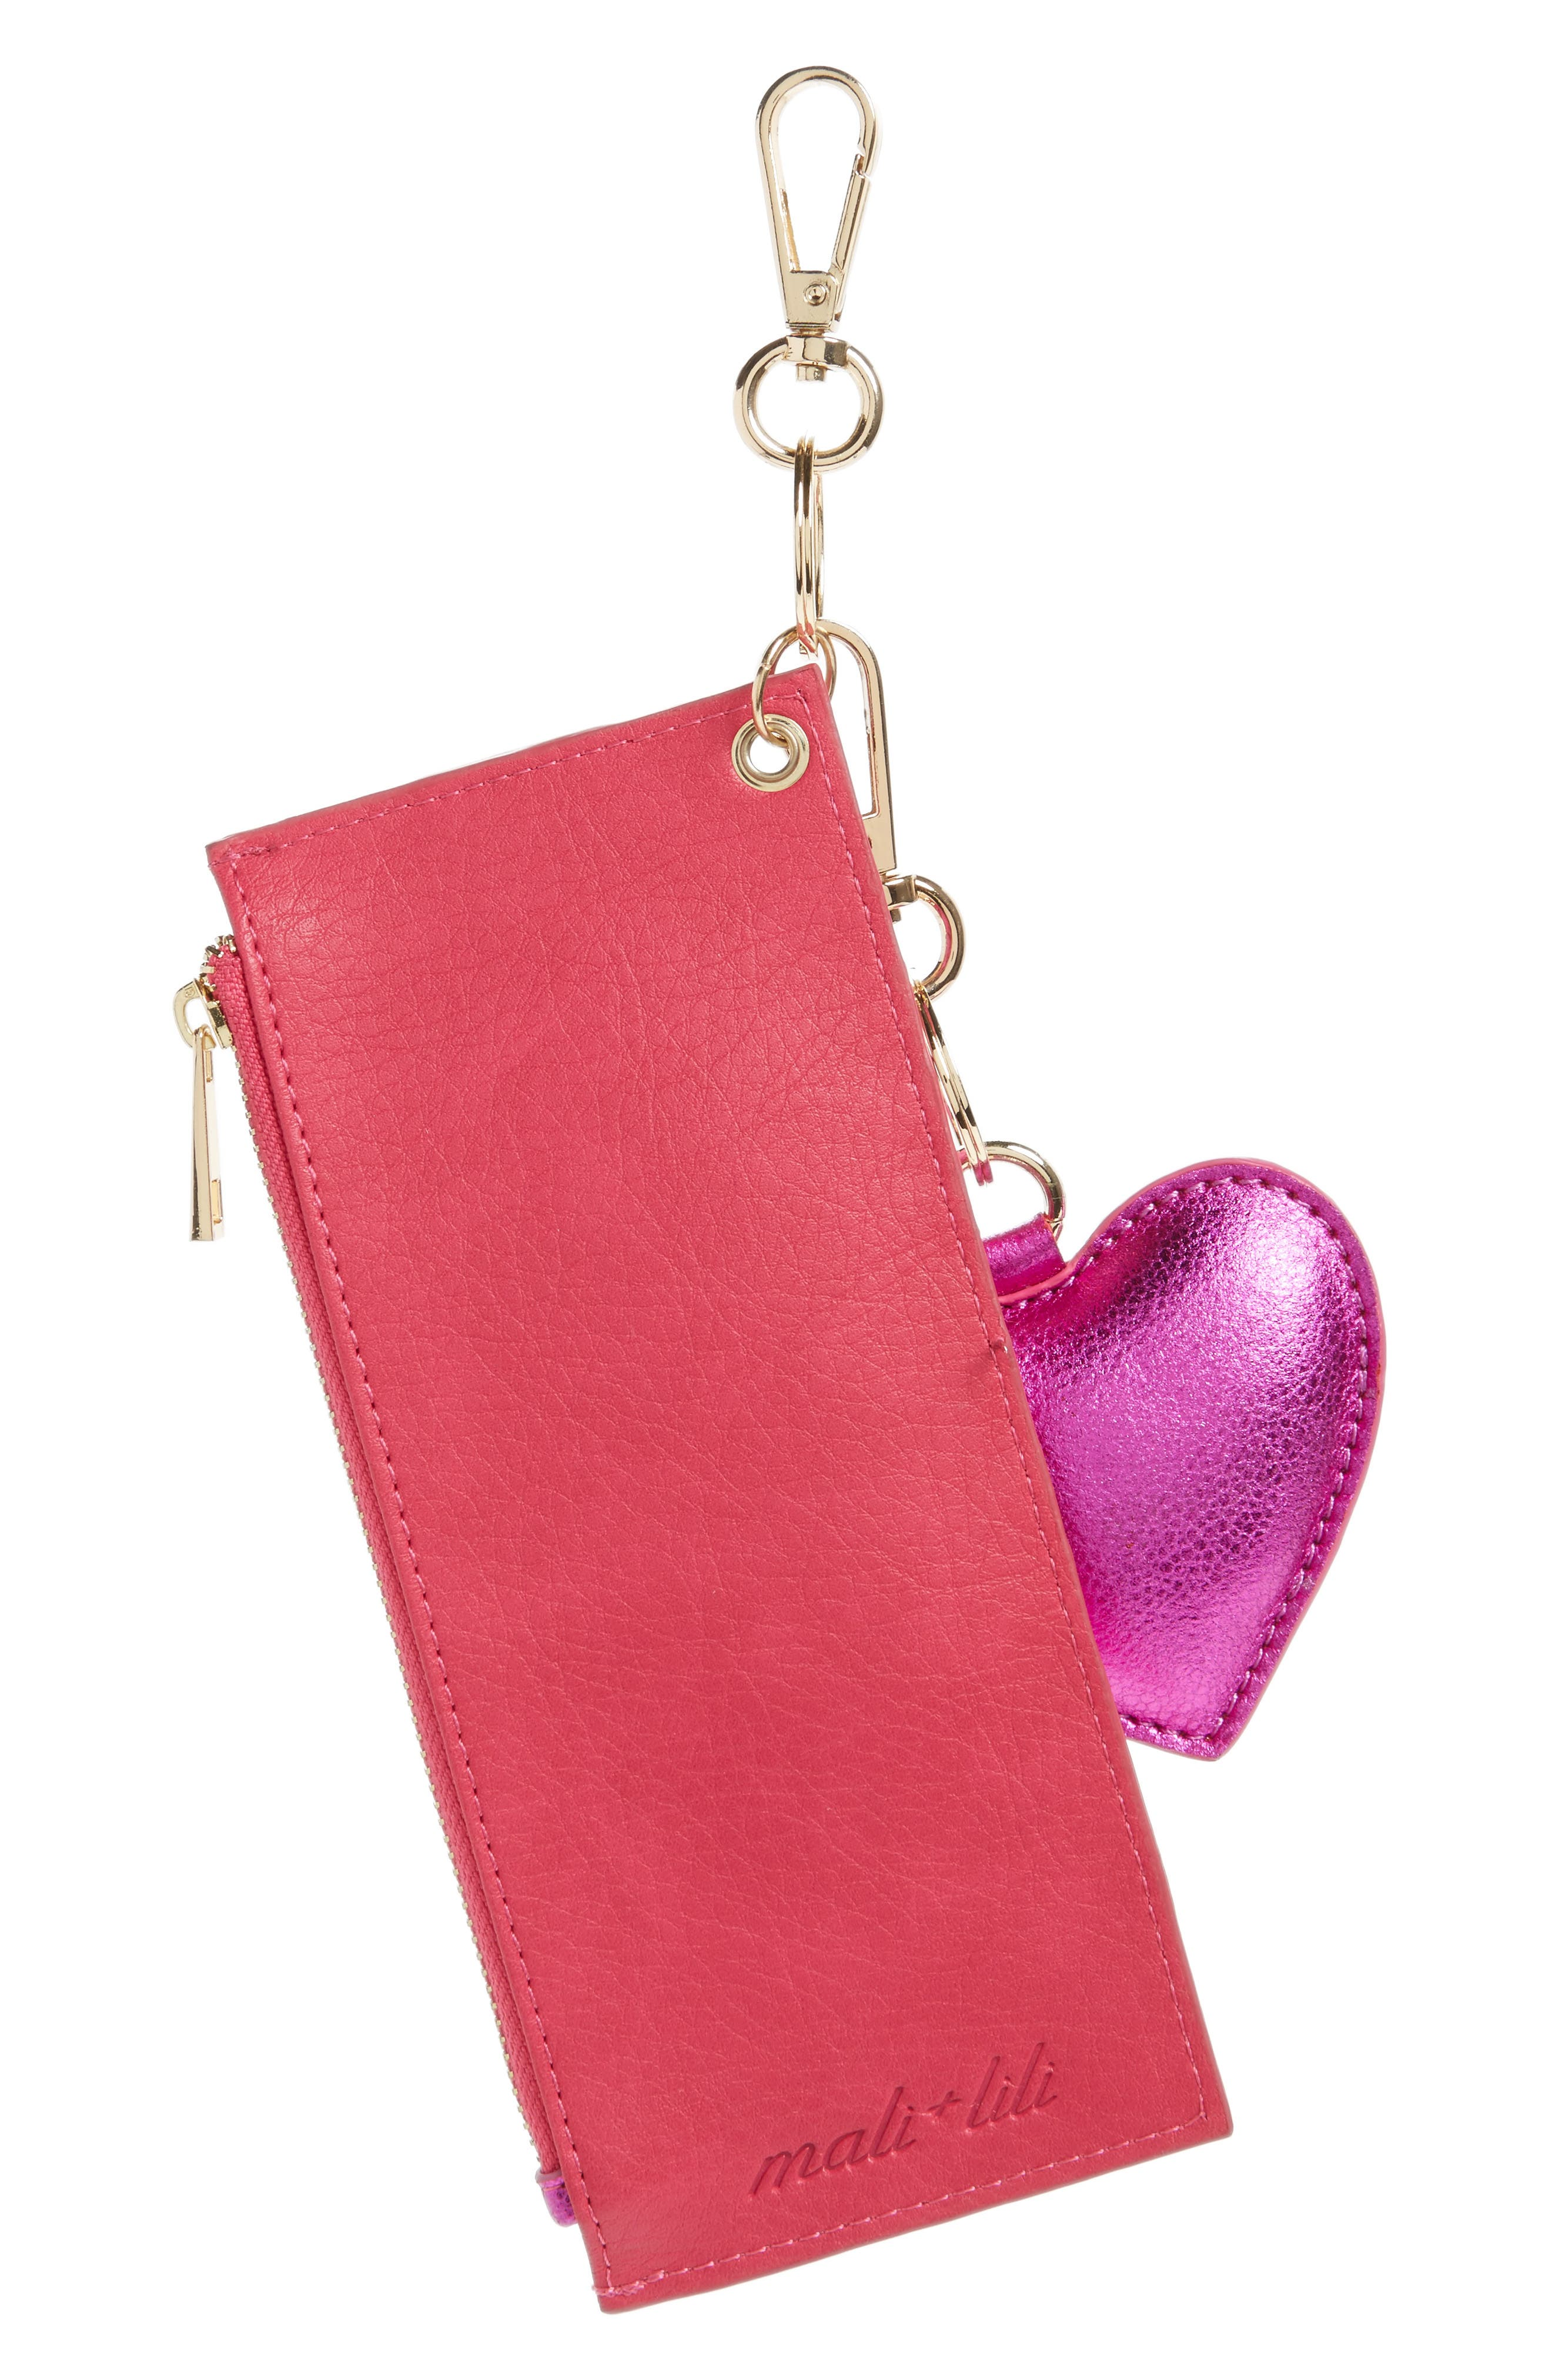 Mali + Lili Sydney Vegan Leather Card Case with Heart Charm,                             Alternate thumbnail 4, color,                             Hot Pink Metallic